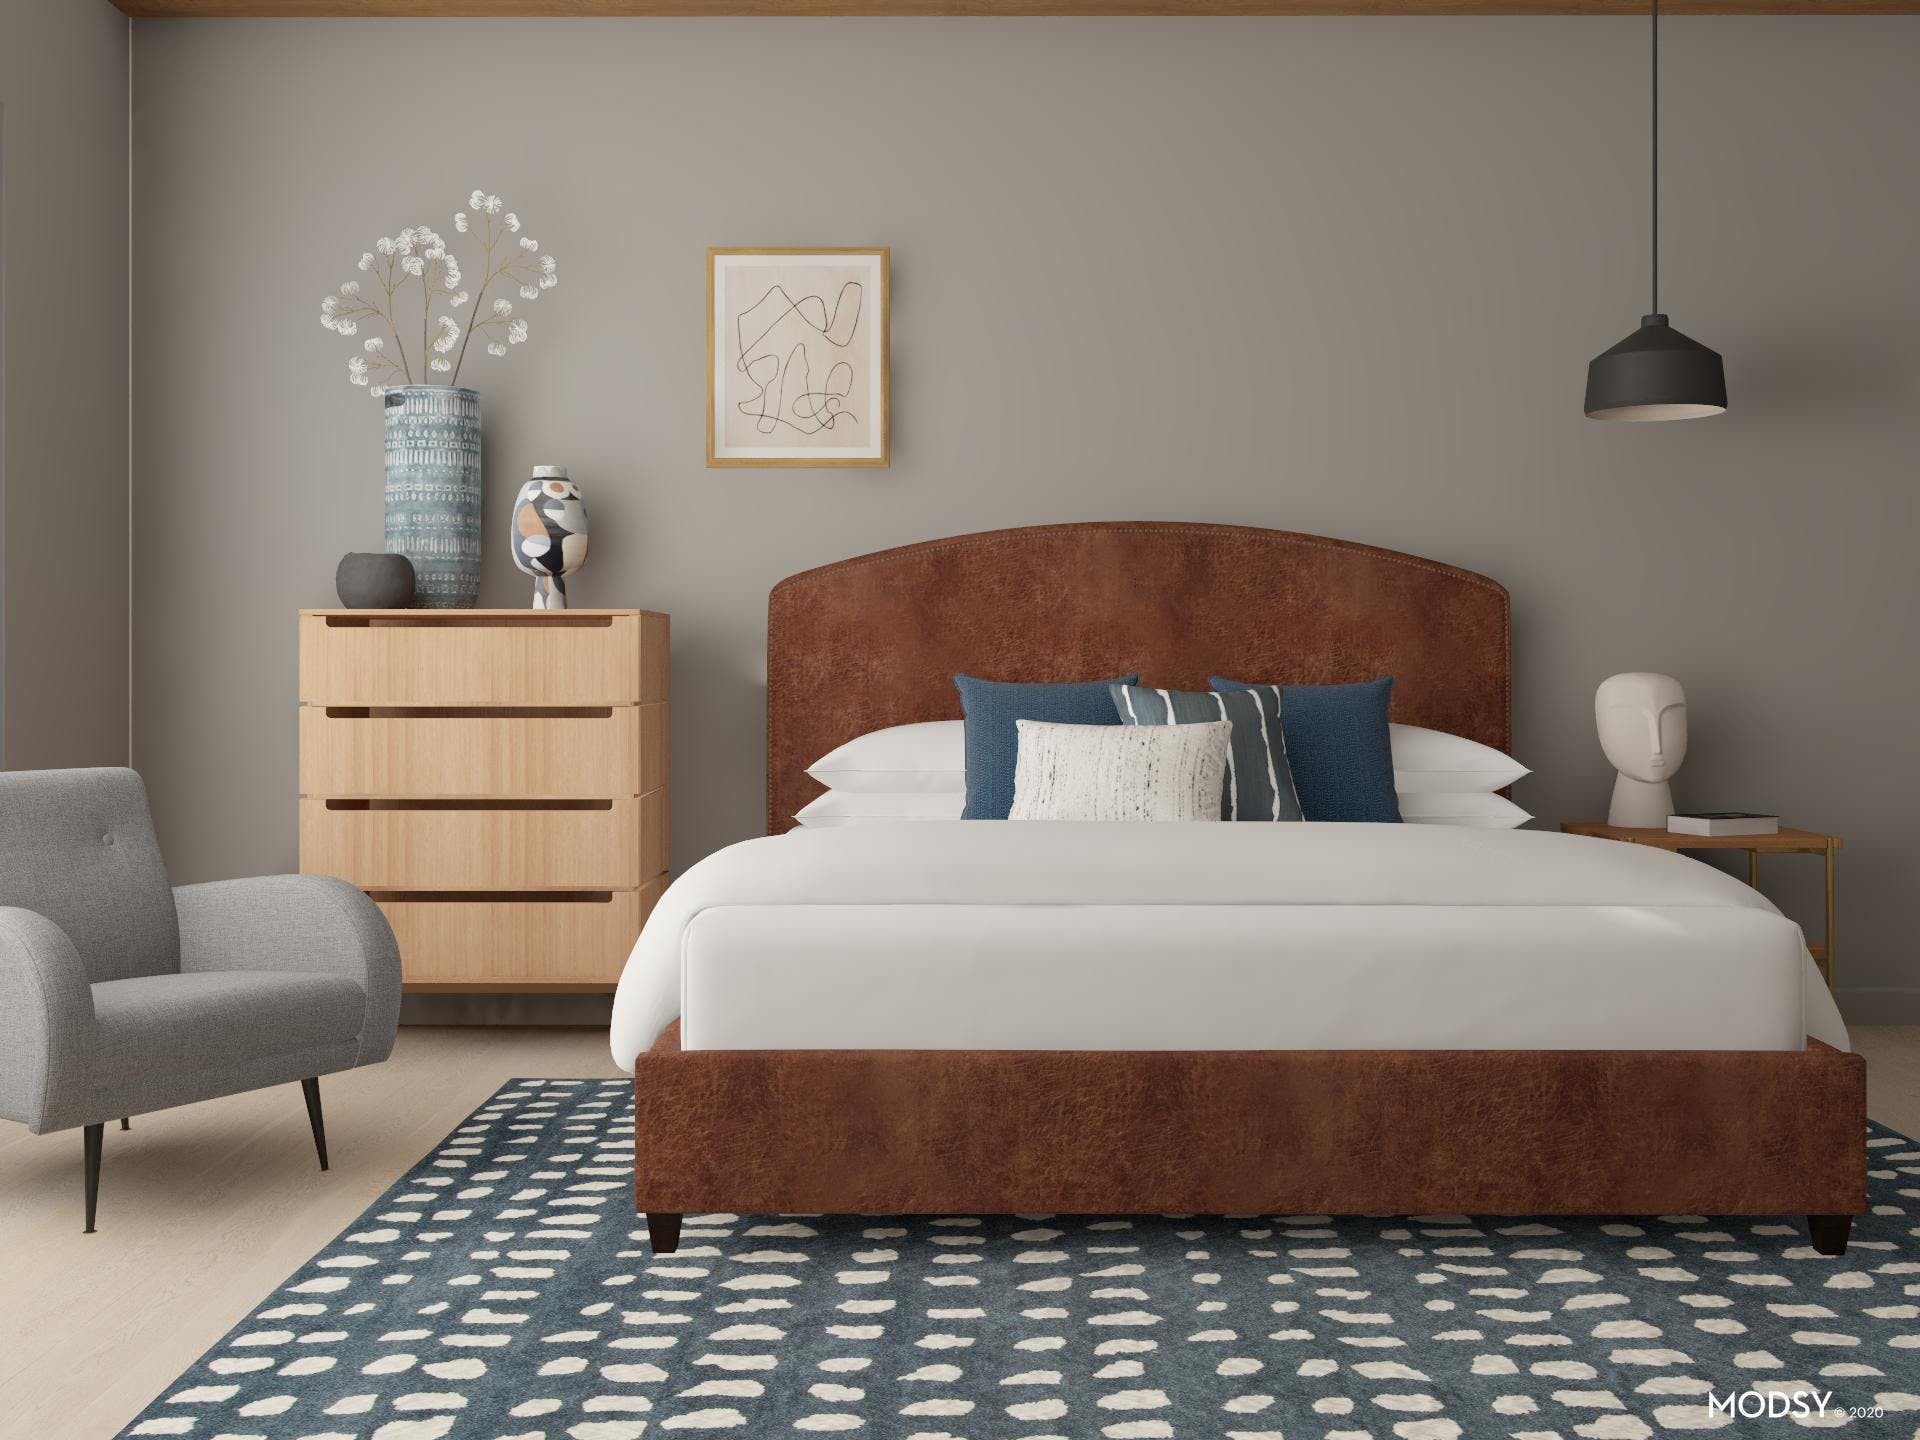 Organic Modern Bedroom with Leather Upholstered Bed in Gray